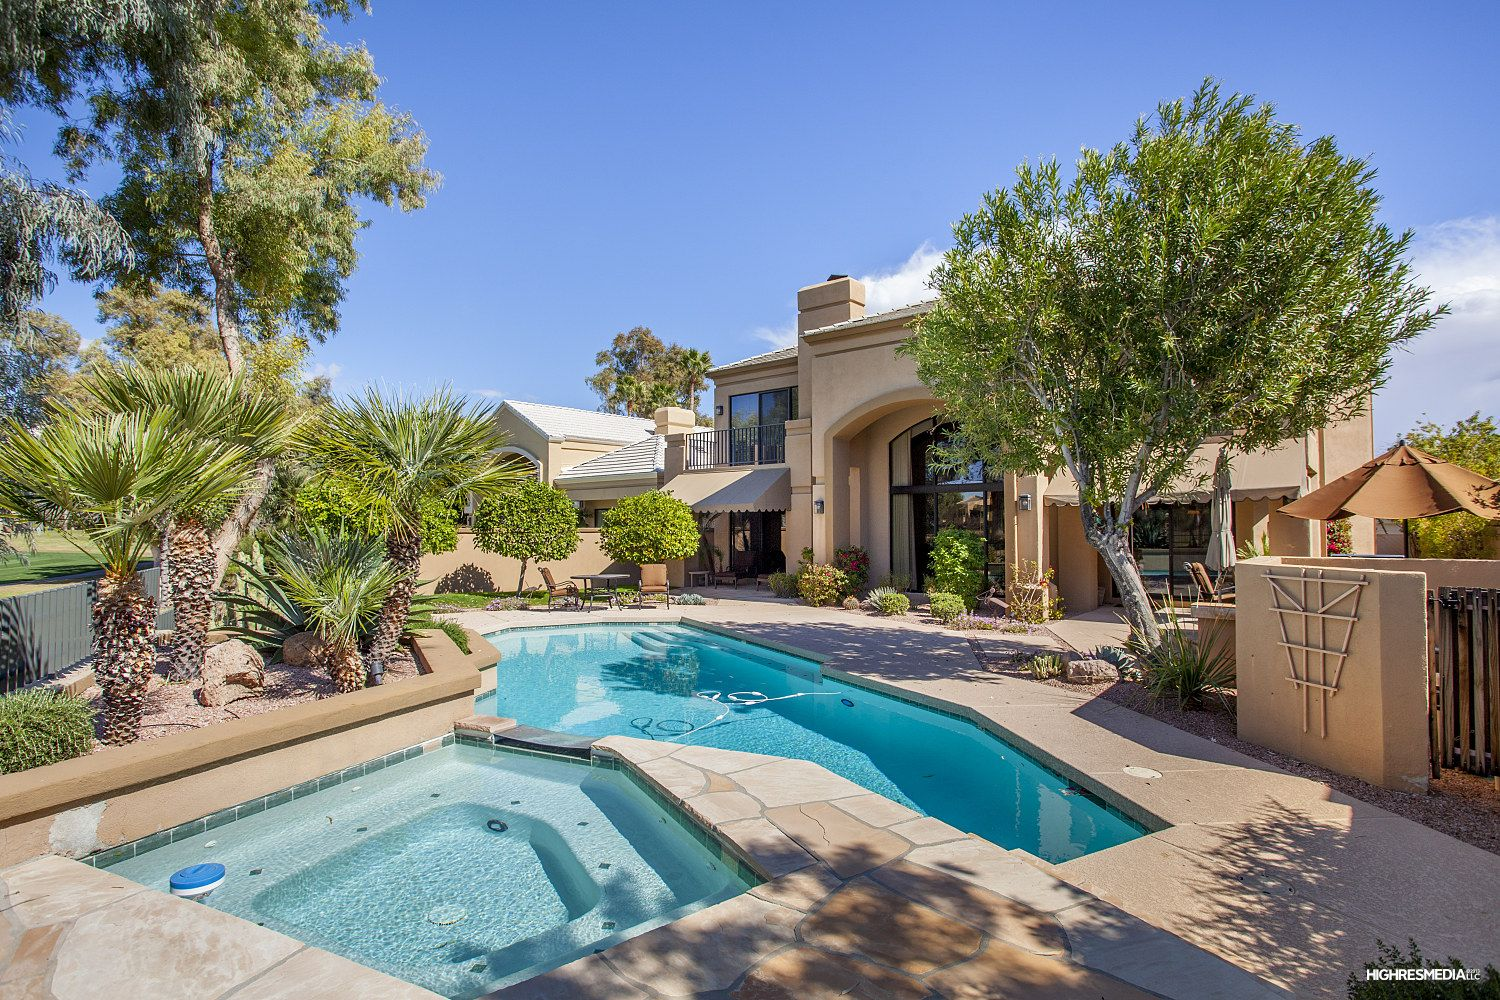 Gainey Ranch home for sale in Scottsdale, Arizona. Take a